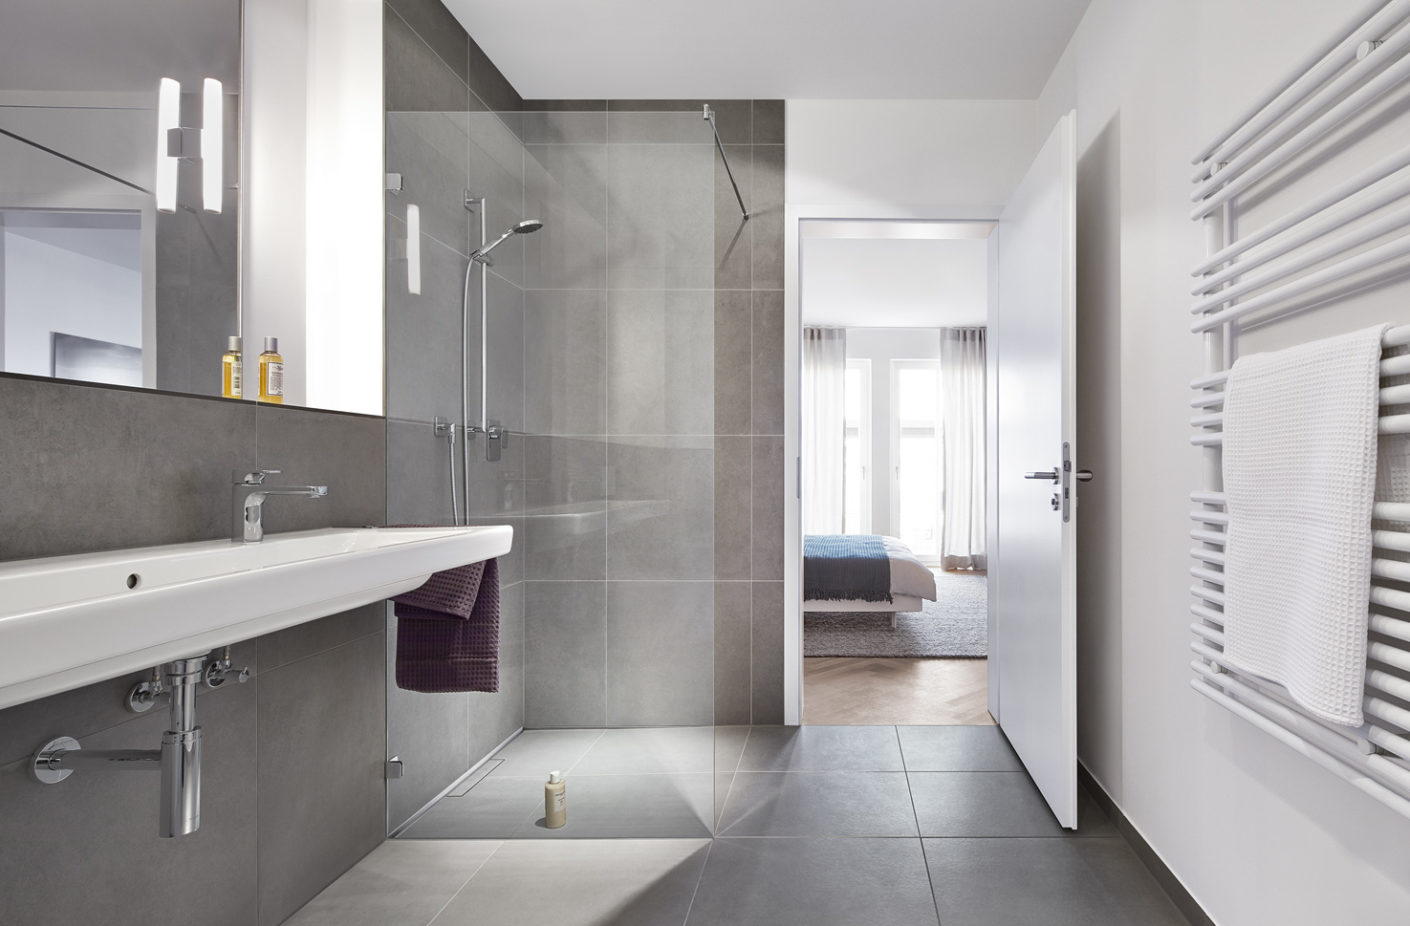 The shower channel CeraWall Individual from Dallmer was chosen for the bathrooms.